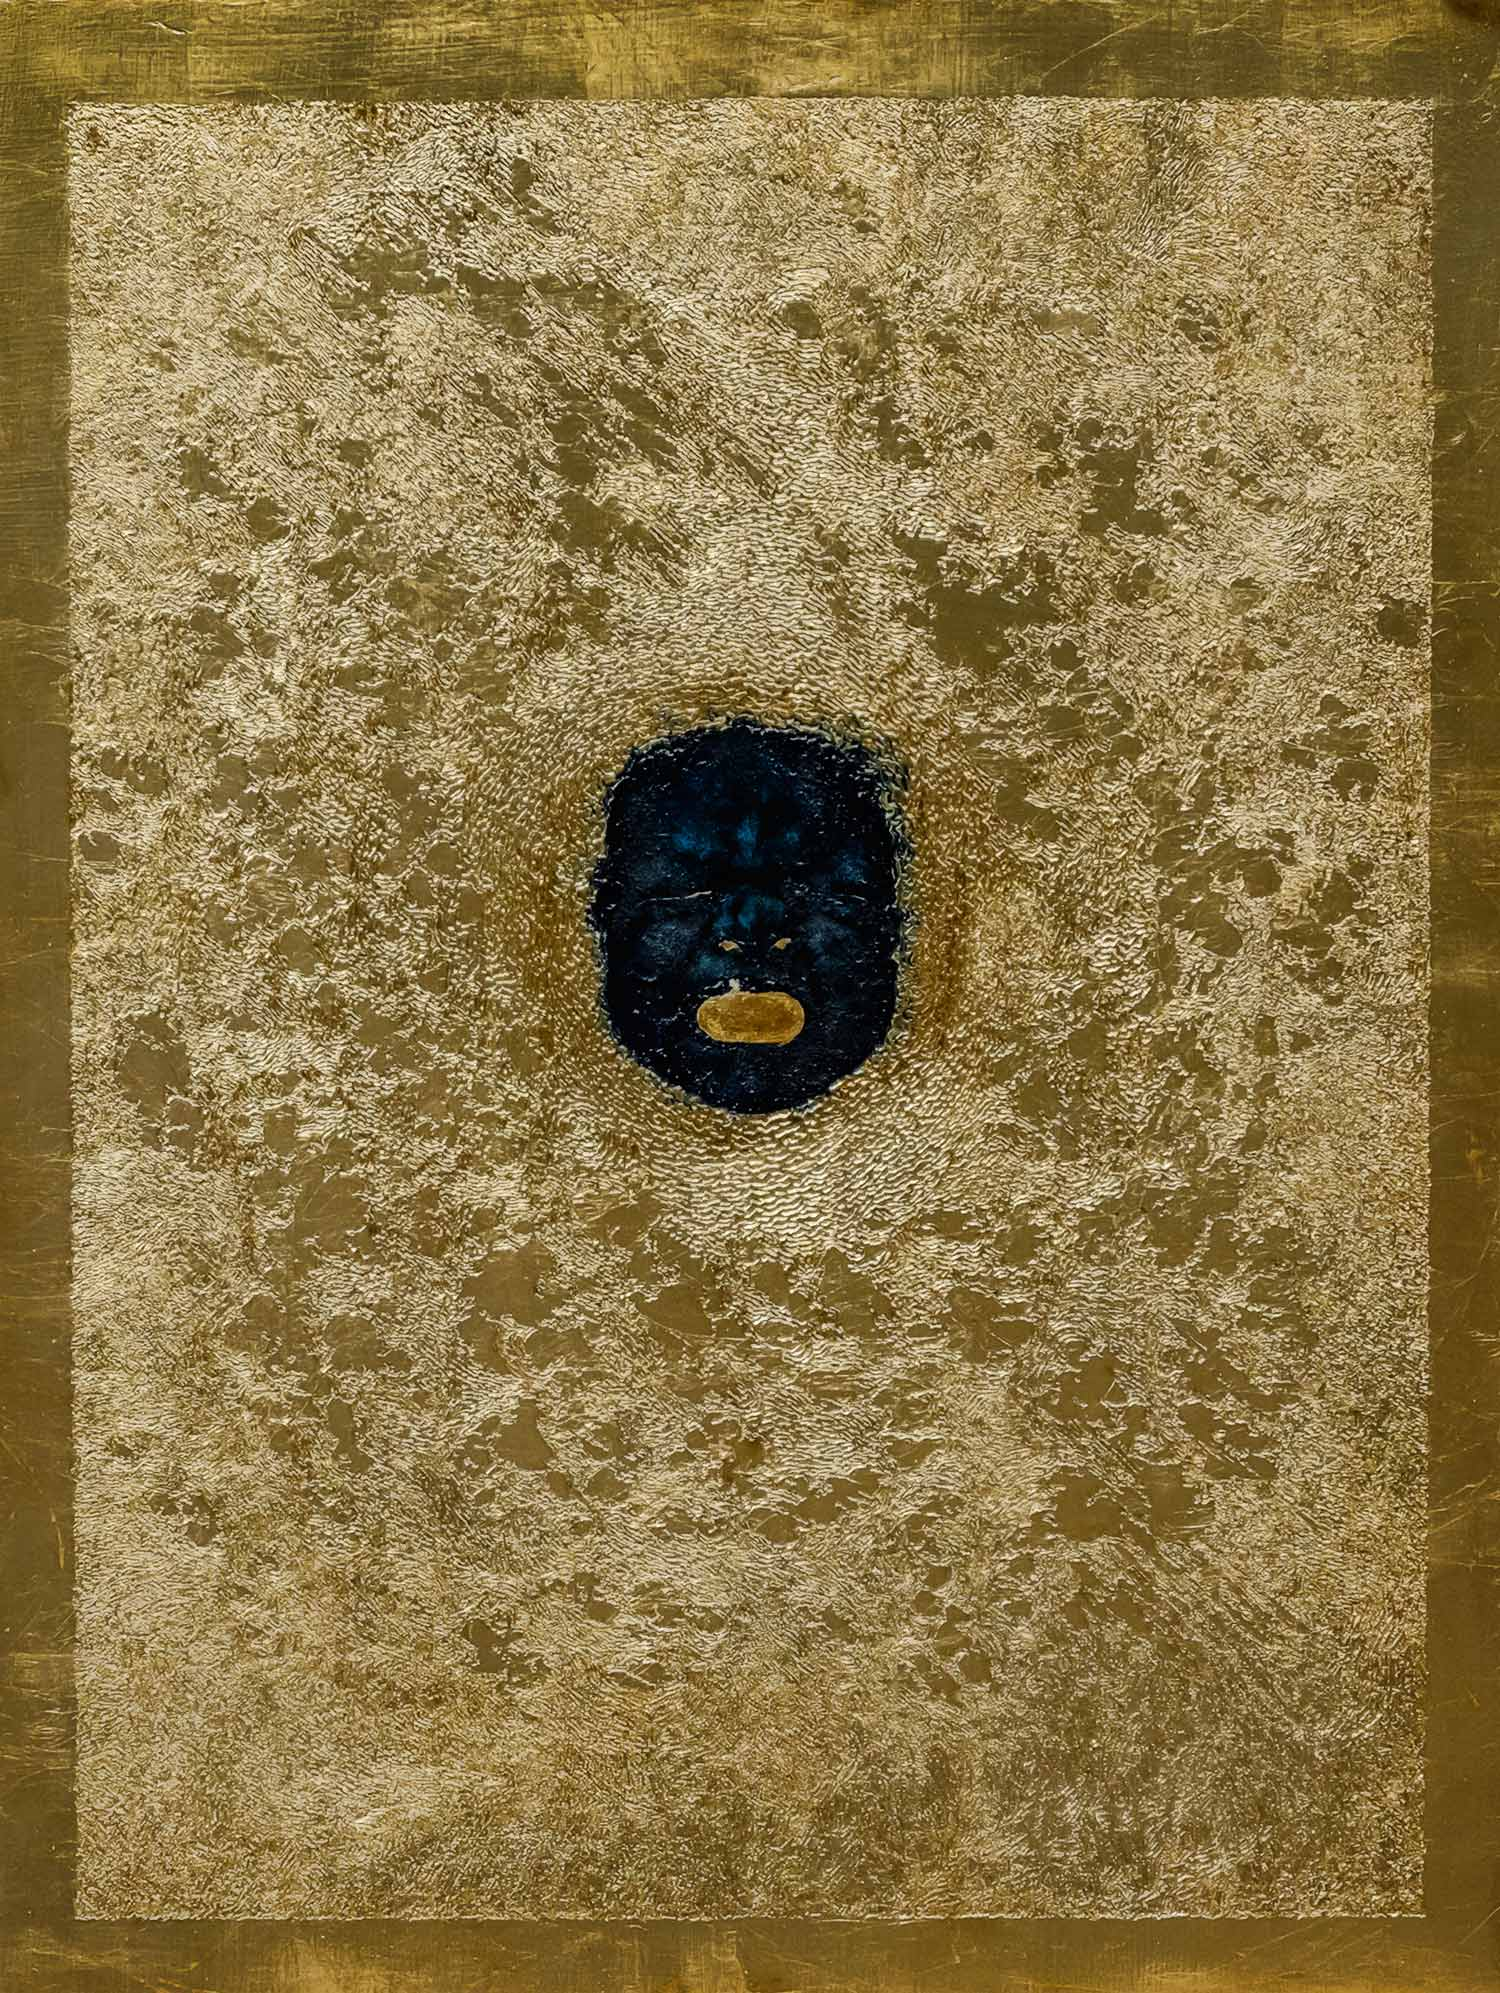 Out   Aristomenis Theodoropoulos  |  2018 - Acrylic, oil and gilding on wood, 56 x 66.5 cm